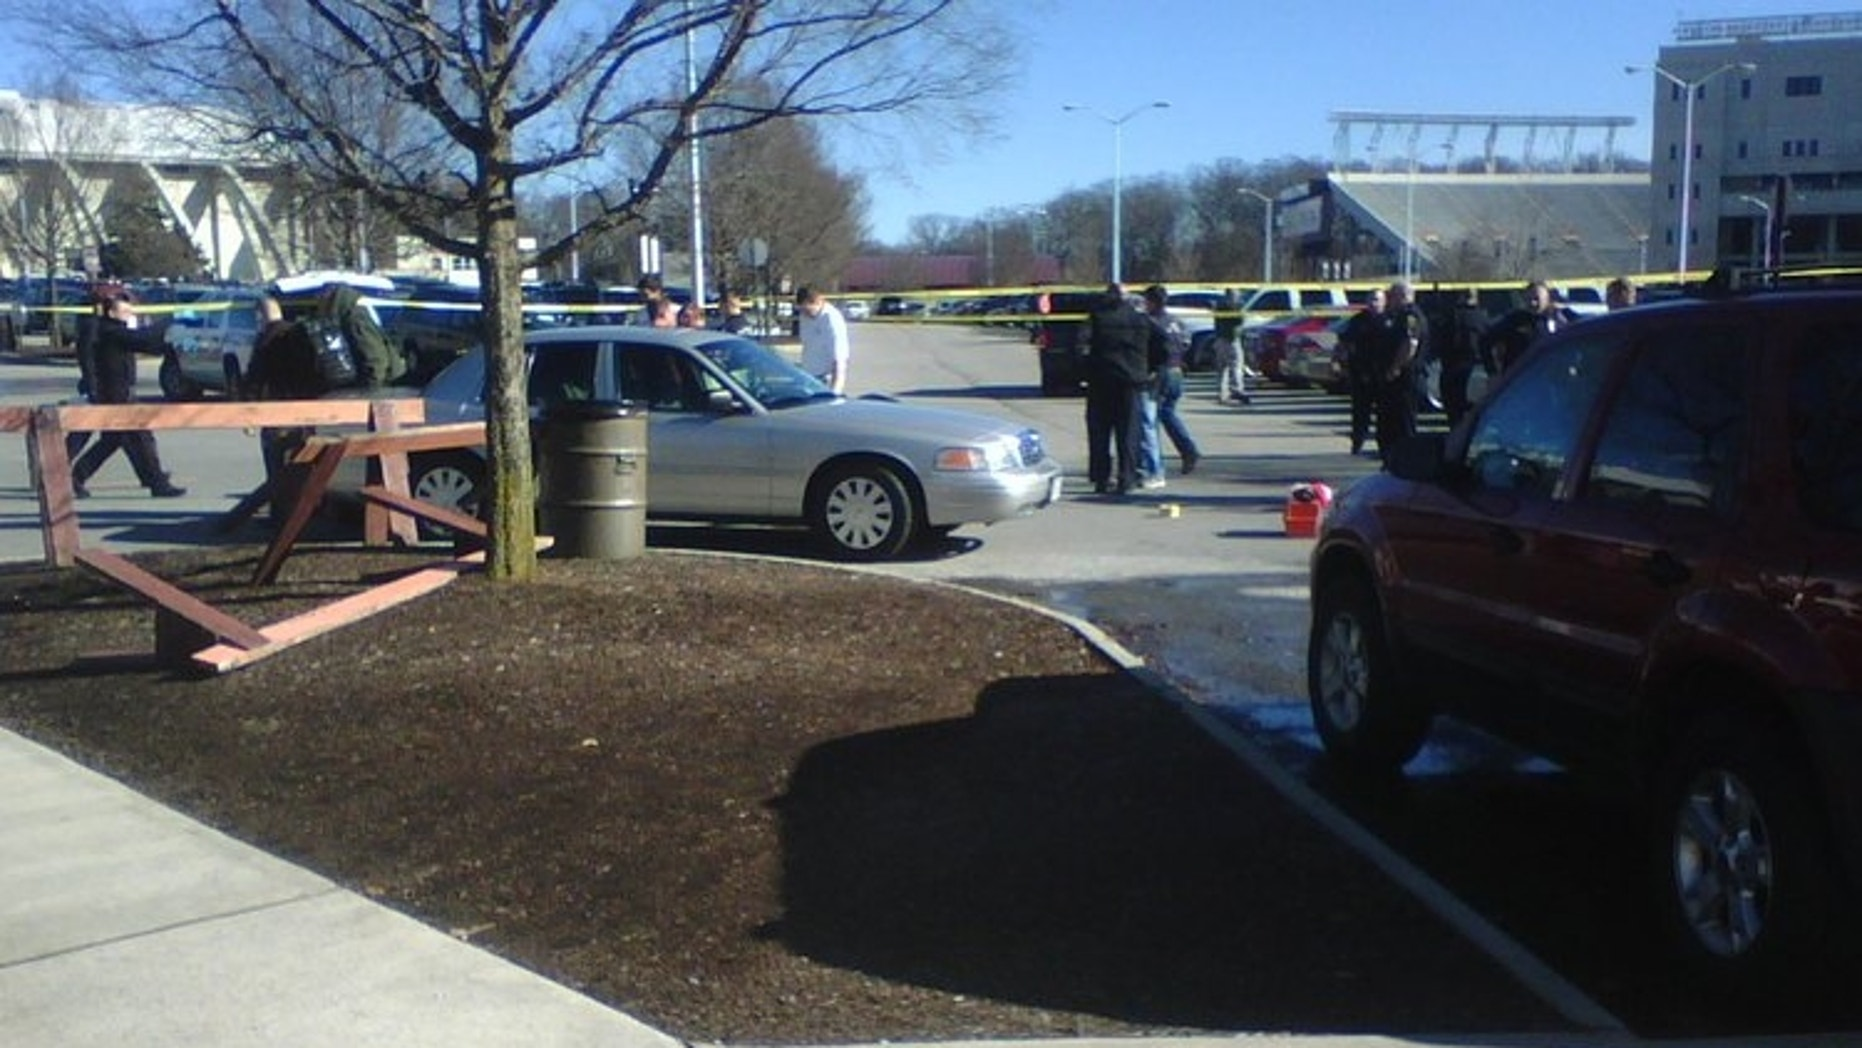 Dec. 8: Authorities respond to reports of shots fired in the parking lot of Virginia Tech's Cassell Coliseum.